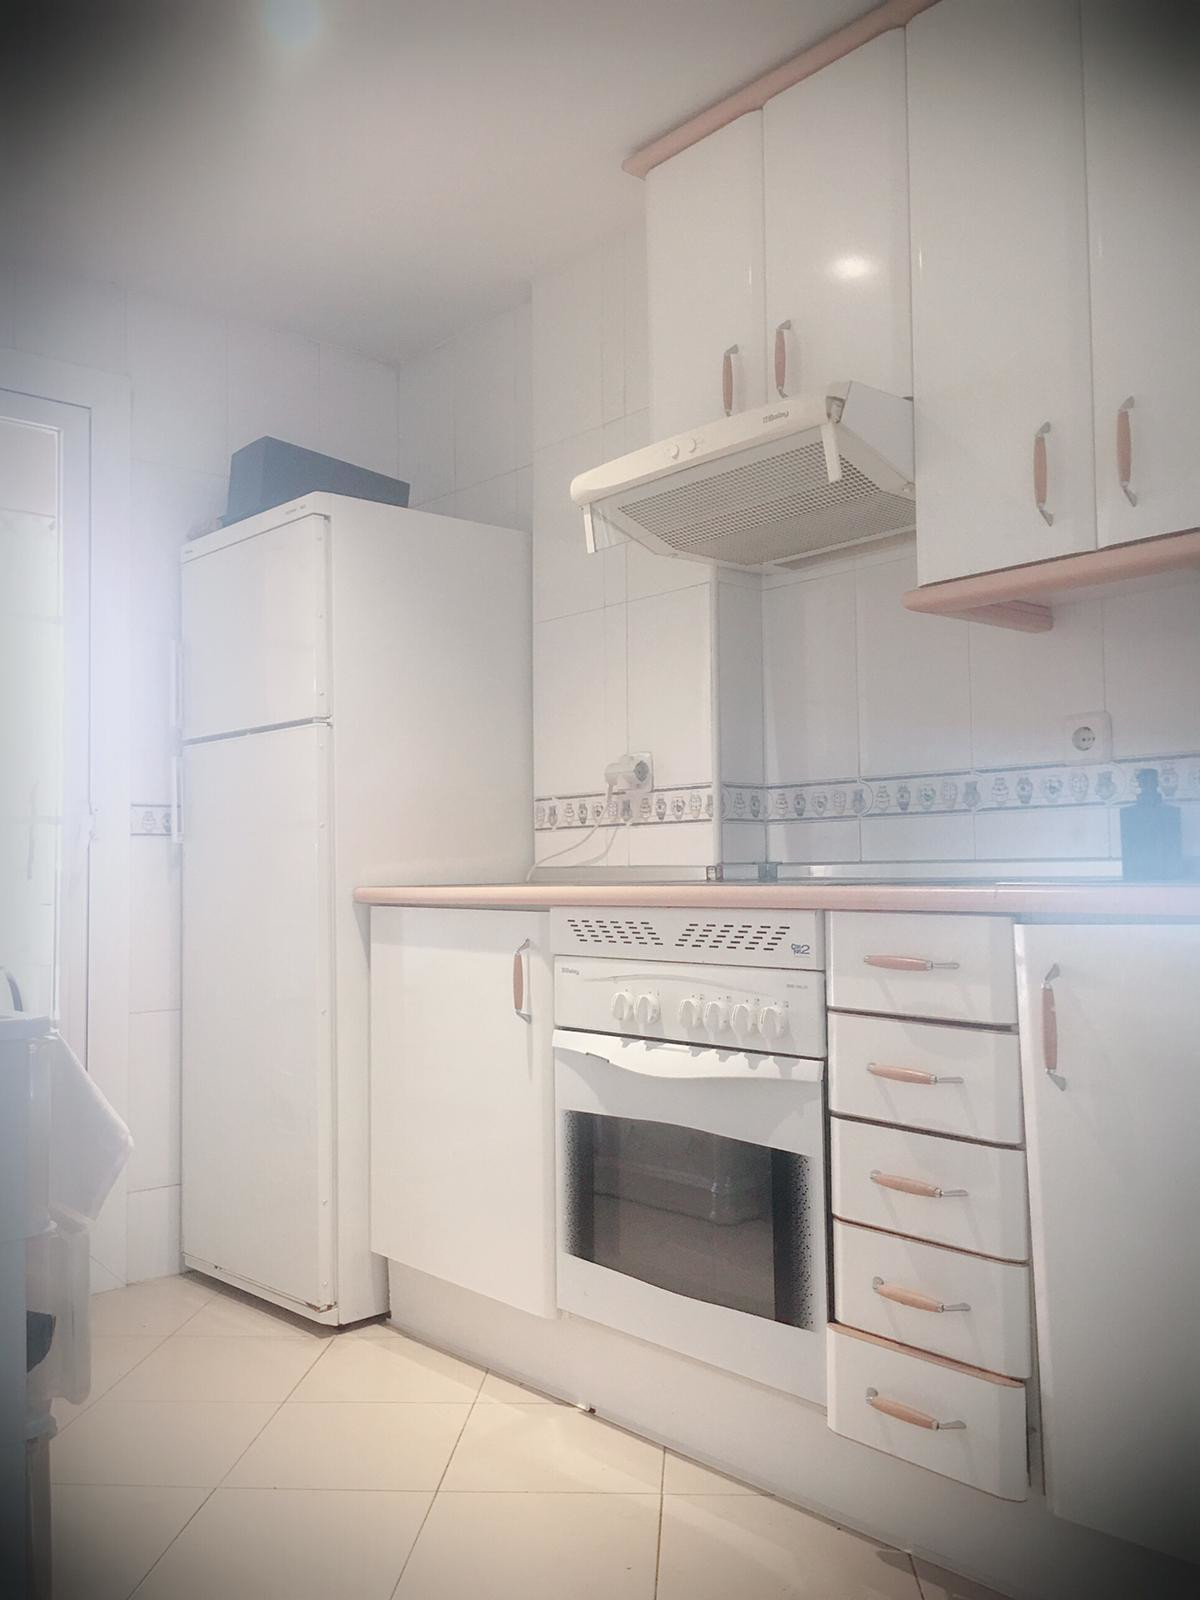 R3239128: Apartment for sale in Nueva Andalucía